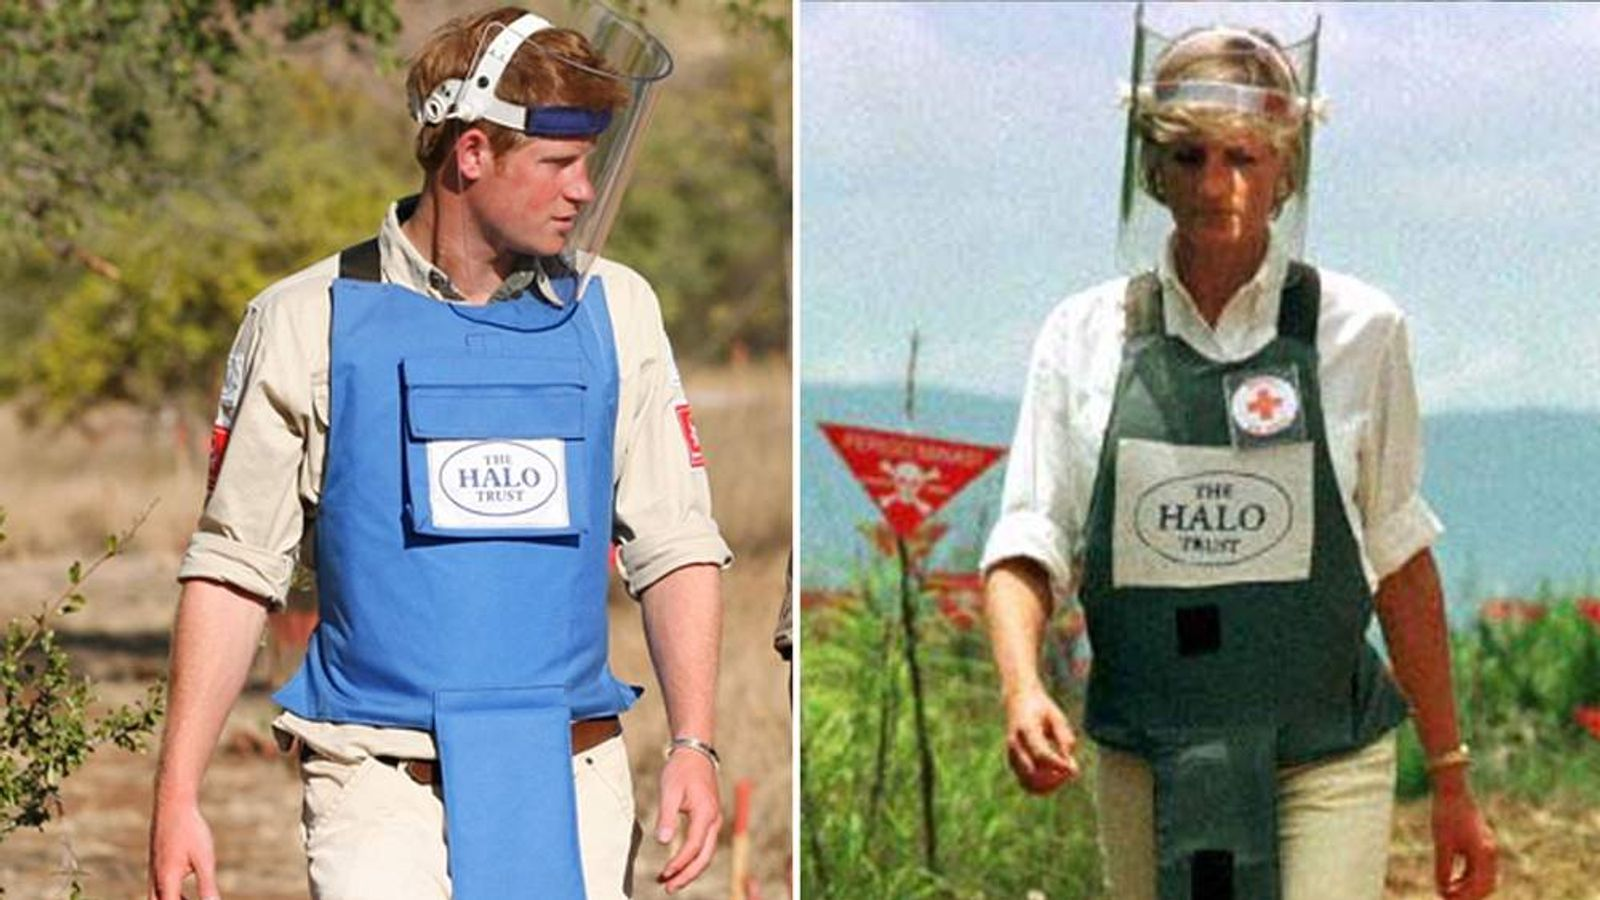 Prince Harry In Mozambique Visits Minefields Cleared By The HALO Trust